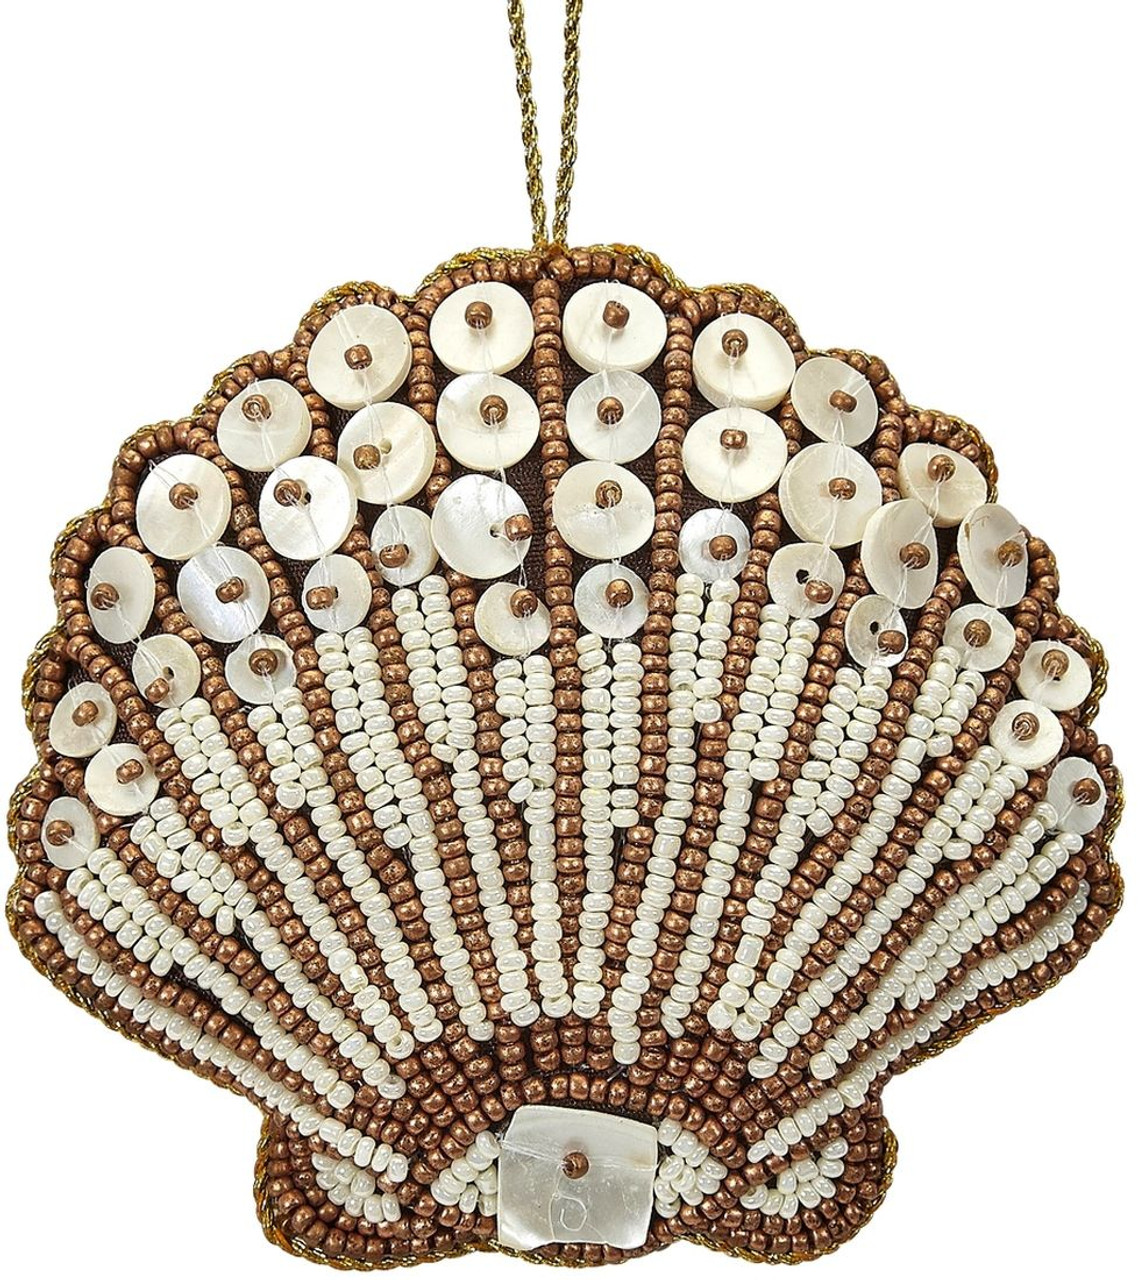 Scallop Mother of Pearl & Beads Ornament - Bronze